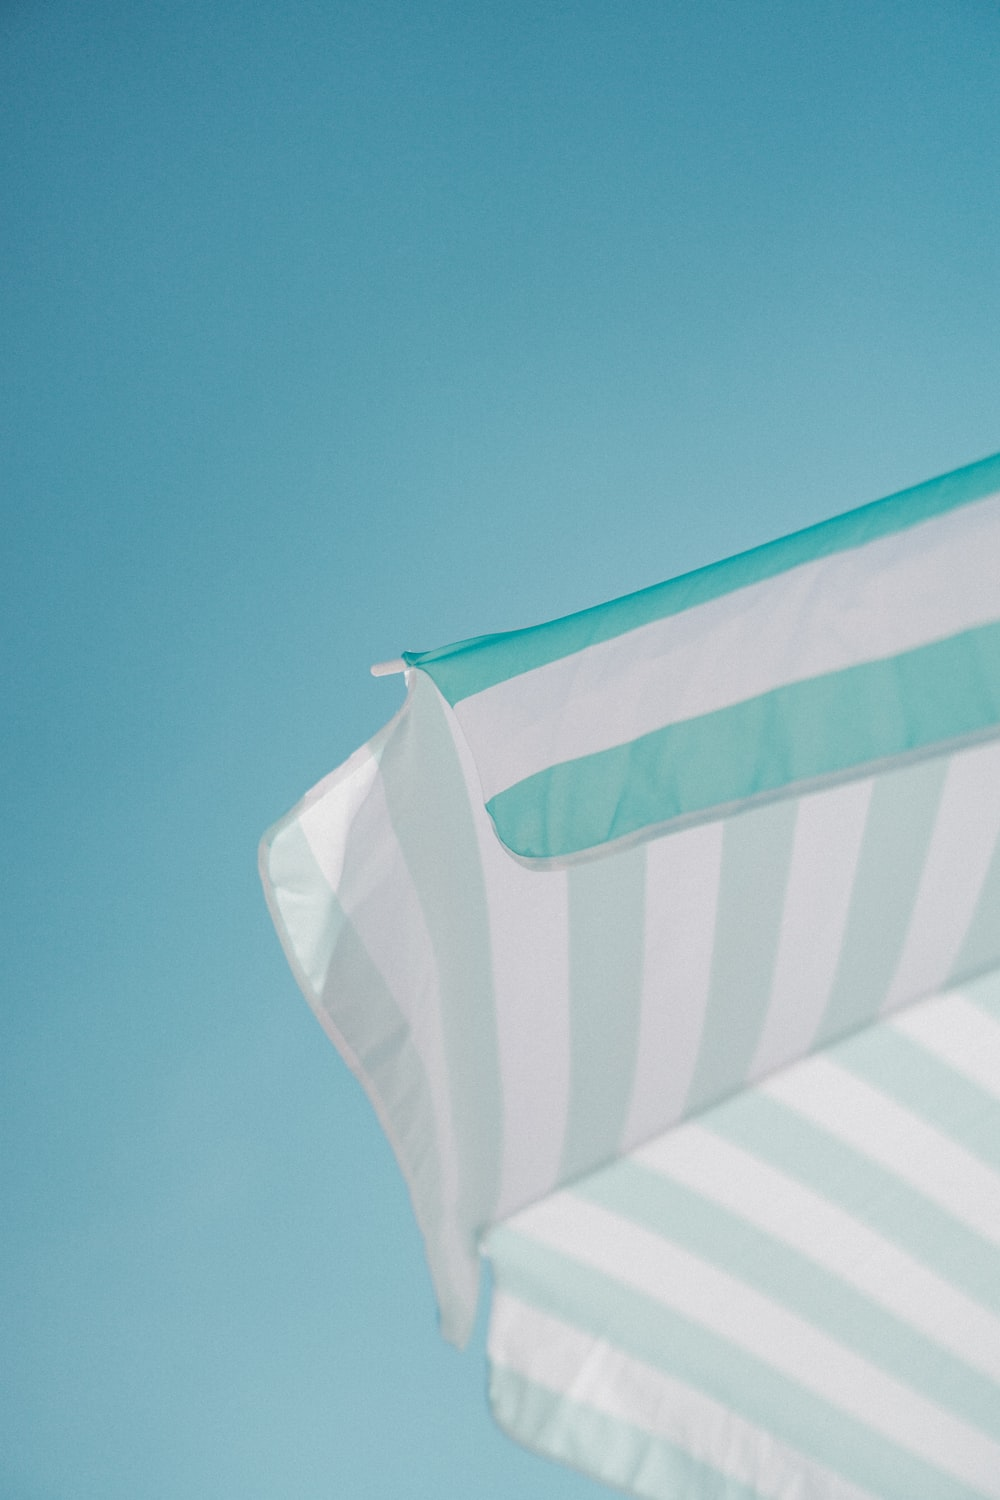 white and green striped parasol during daytime photo